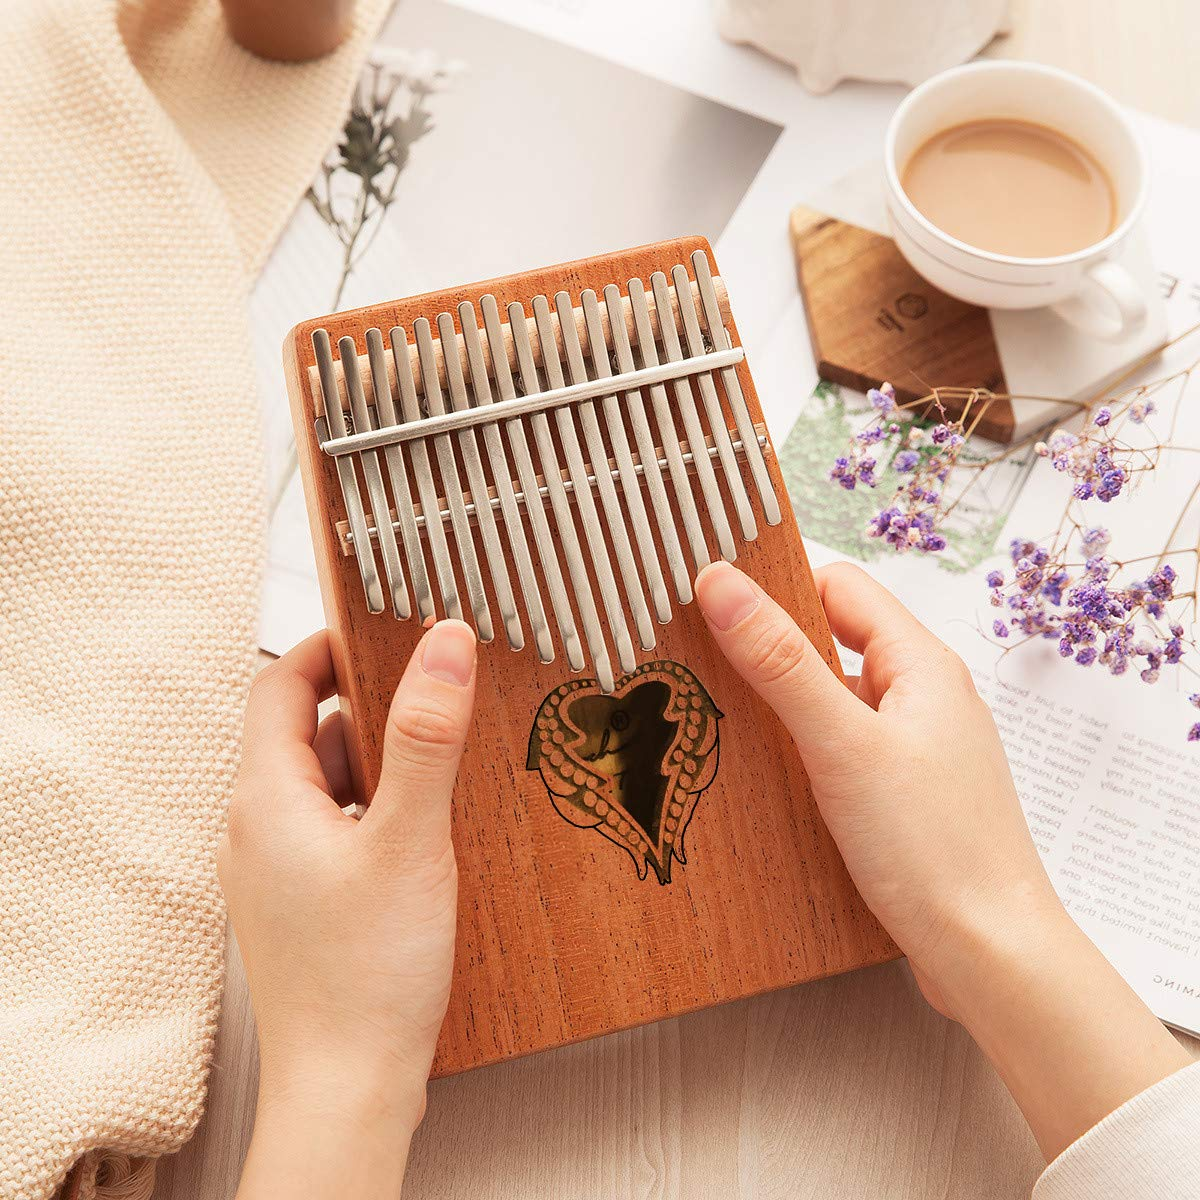 Thumb Piano Ranch Kalimba 17 keys Finger Mbira with Online 6 Free Lessons Solid Wood Mahogany Christmas Gifts with Bag/Carved Notation/Tune Hammer - Love Heart by Ranch (Image #6)